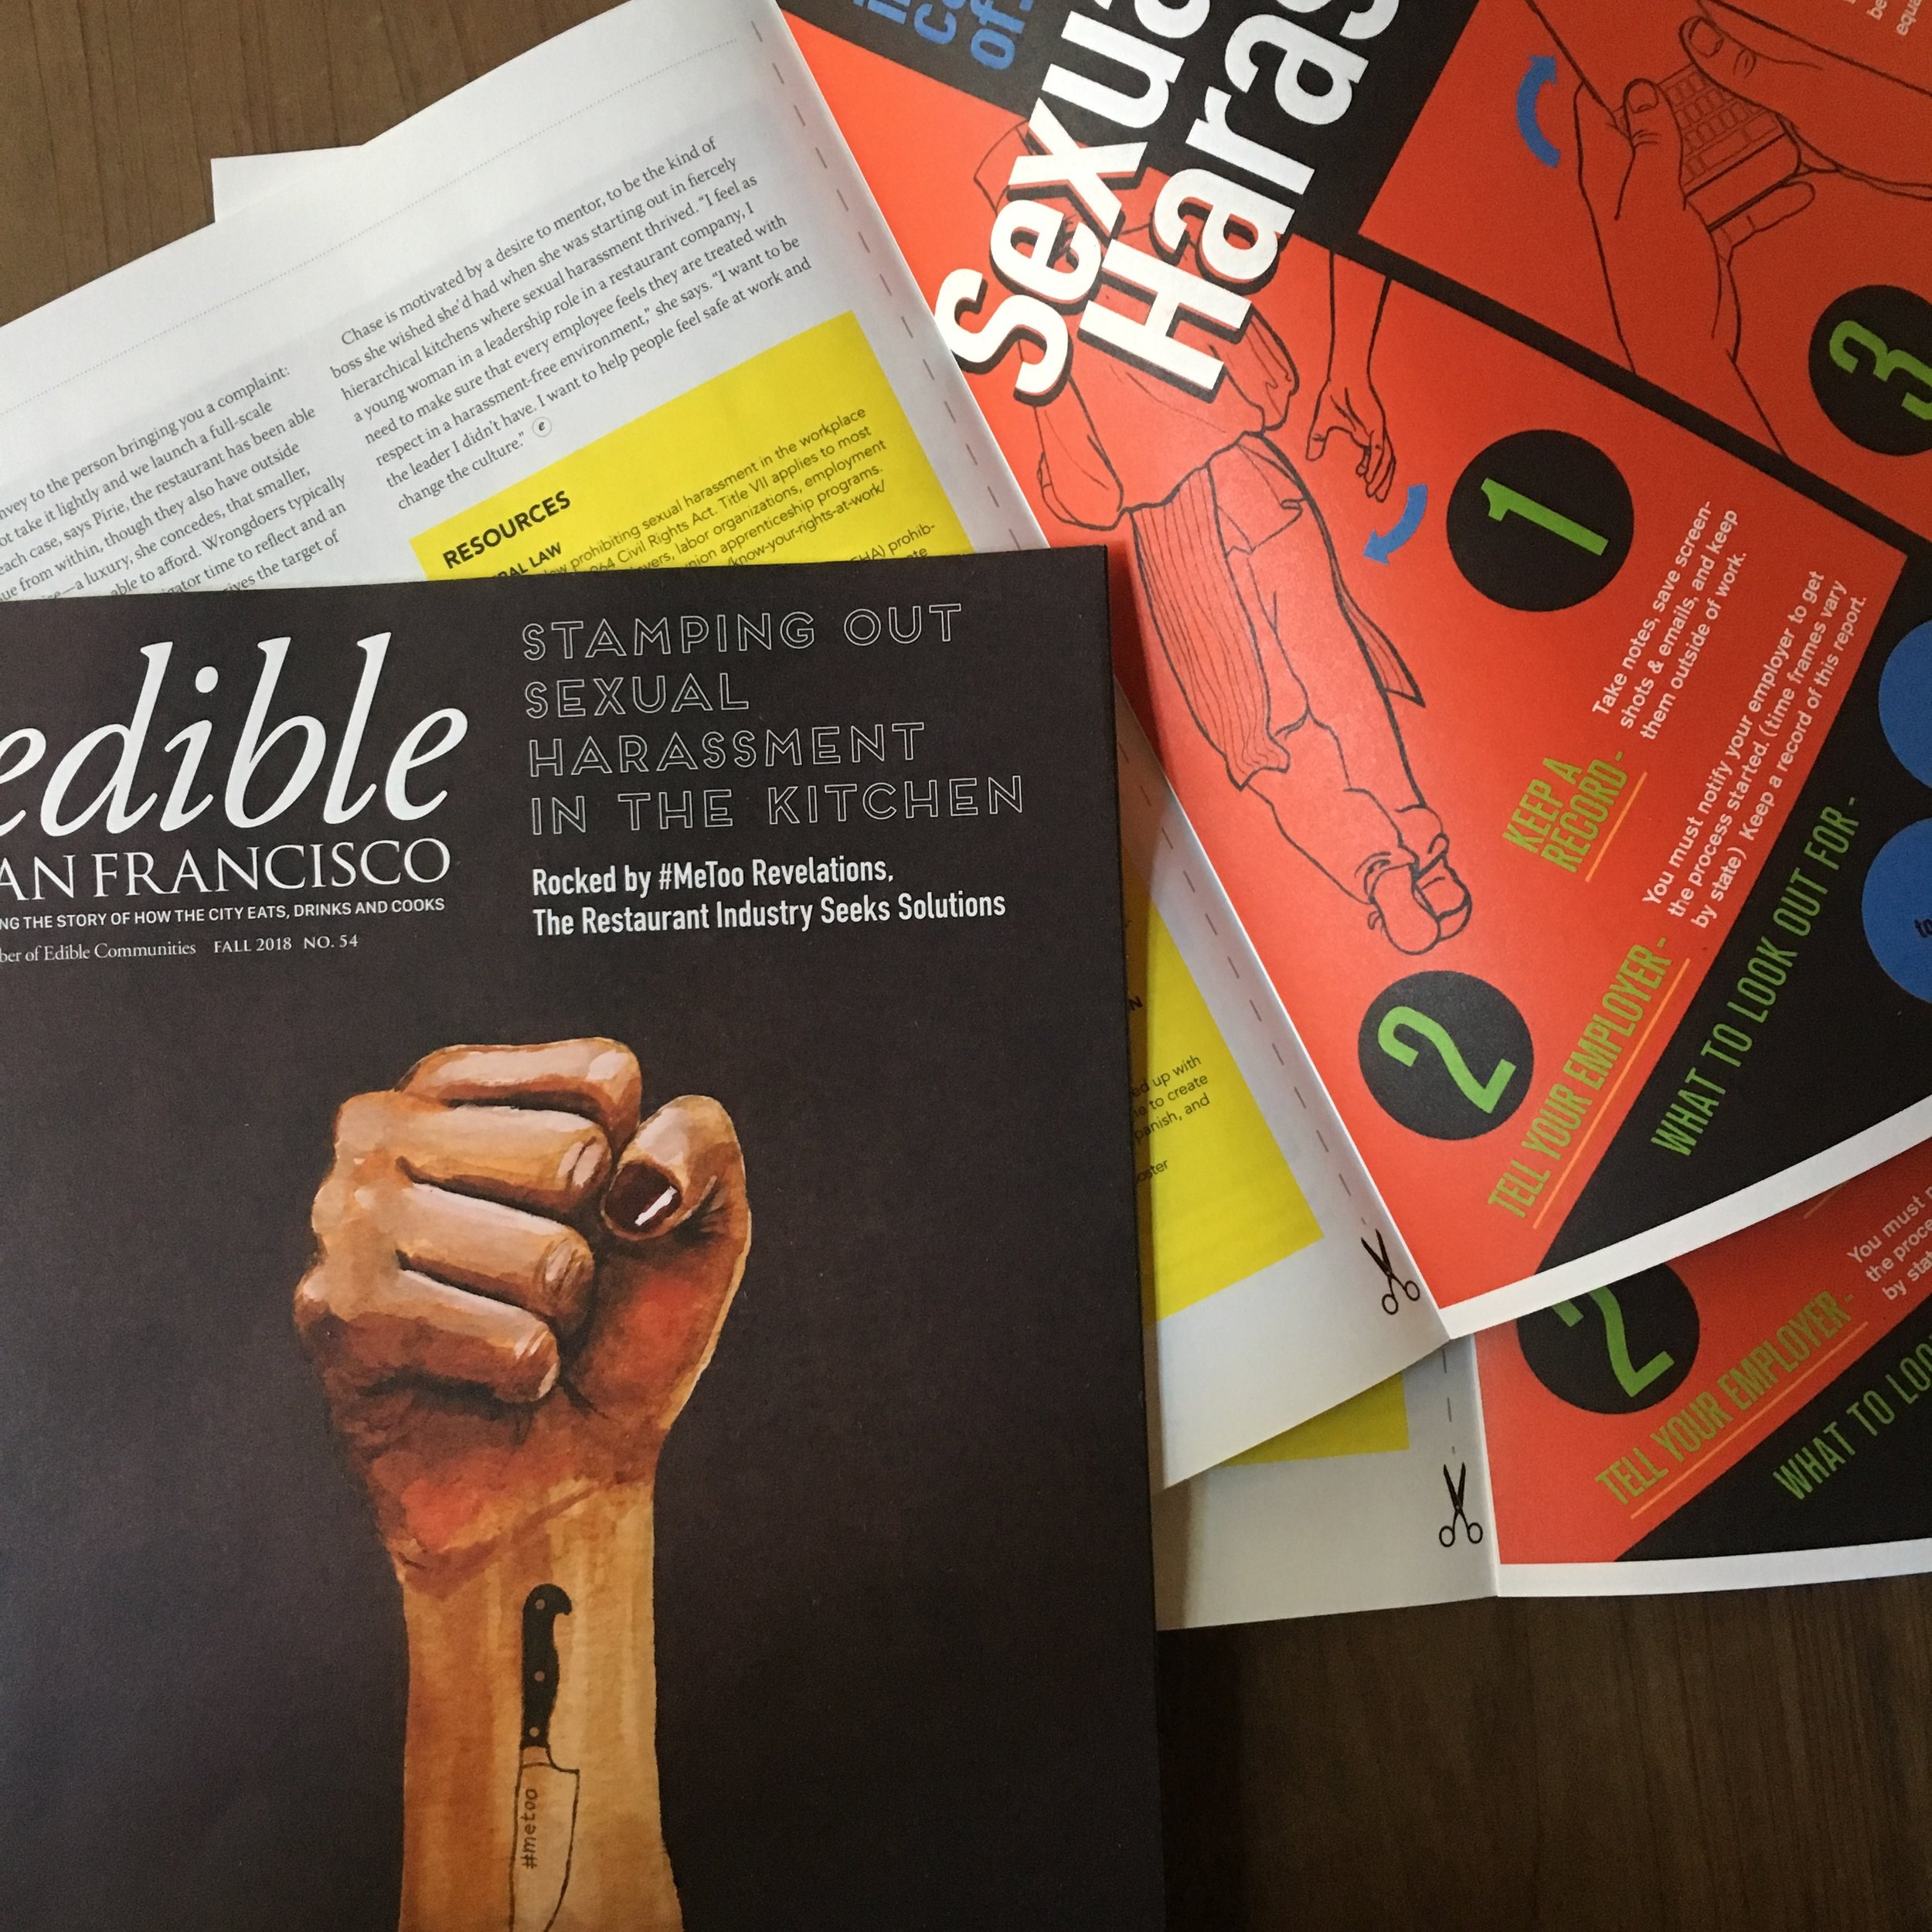 EDIBLE SF: Tamping Out Sexual Harassment